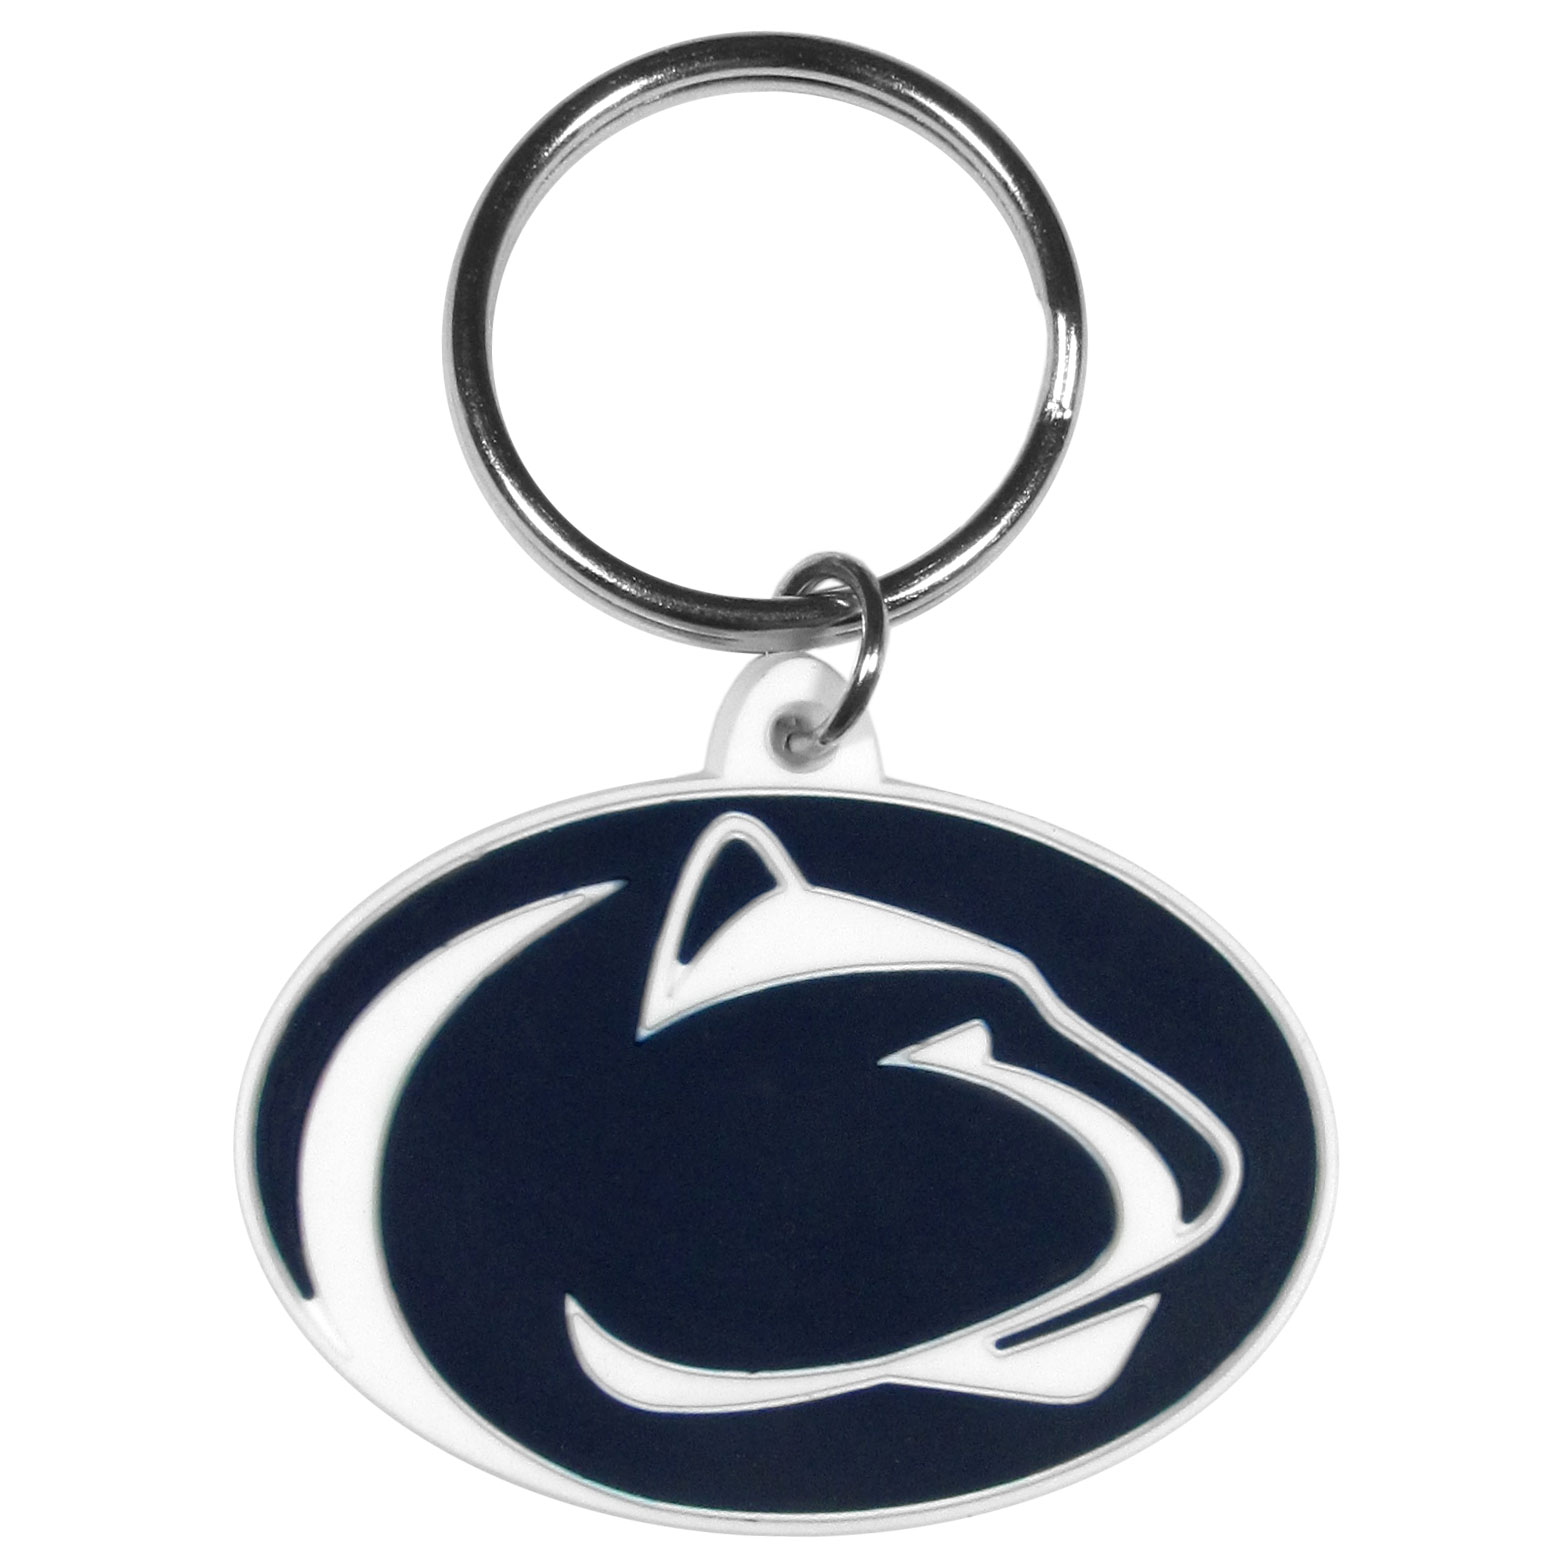 Penn St. Flexi Key Chain - Our College Flexi key chains are made of a rubbery material that is layered cut in the Penn St. Nittany Lions primary logo. Thank you for shopping with CrazedOutSports.com